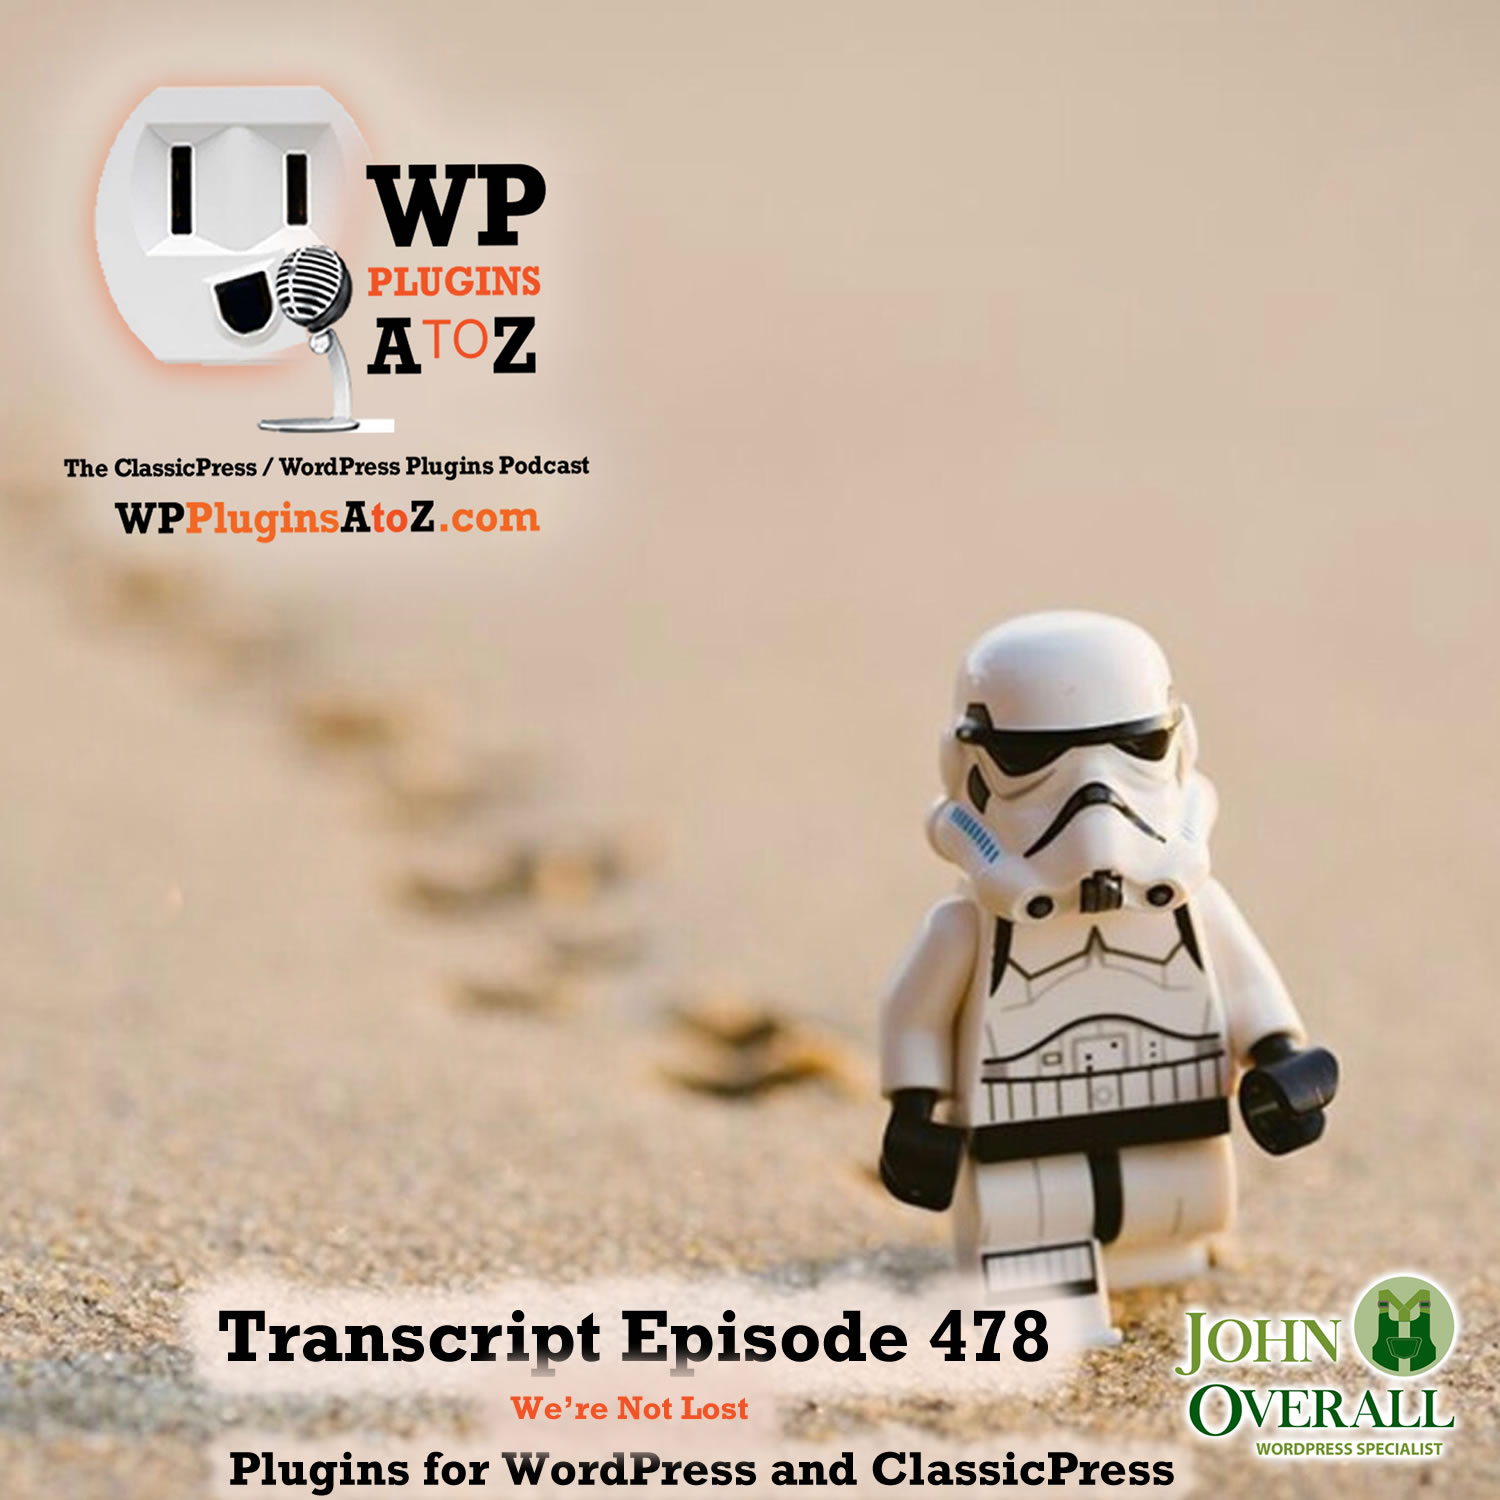 It's Episode 478 with plugins for Understanding the Body, Putting on the Protection, Getting out on the Streets, Watching for Snow, Finding the Store, Visualizing the RONA and ClassicPress Options. It's all coming up on WordPress Plugins A-Z!